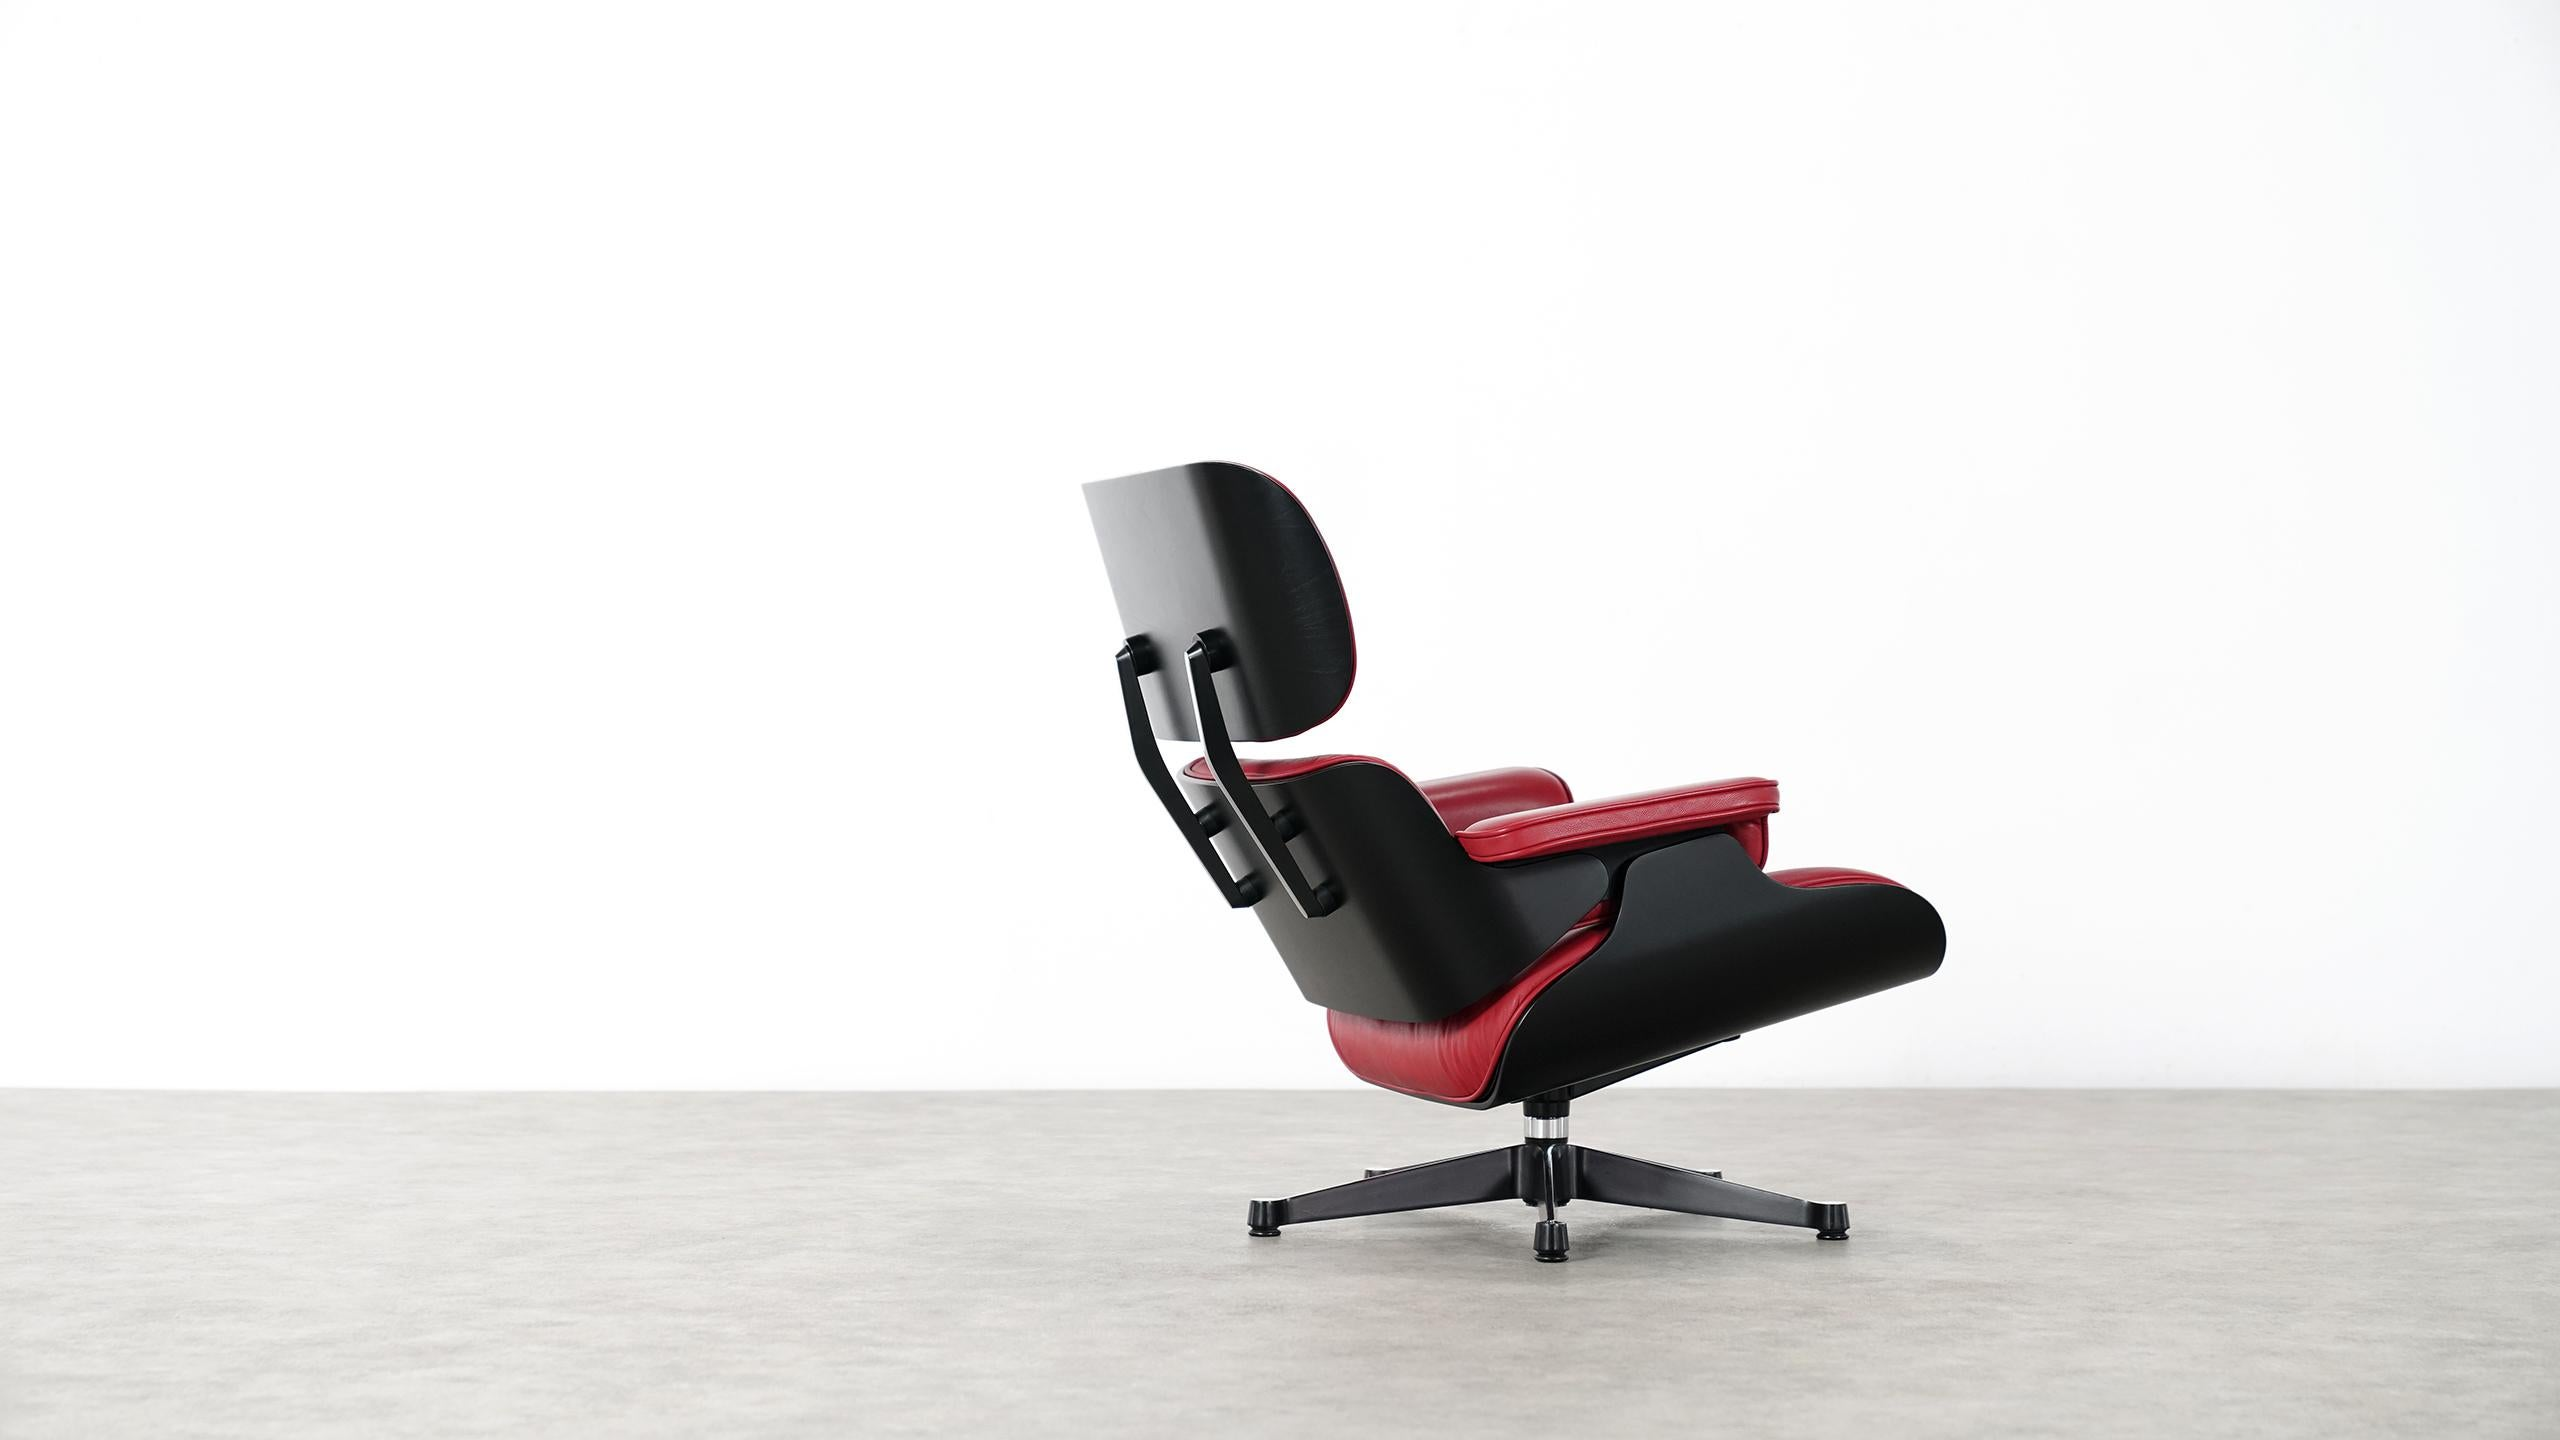 Vitra Eames Lounge Chair Black Vitra Charles Eames Lounge Chair And Ottoman By Vitra Red Leather Black Shells